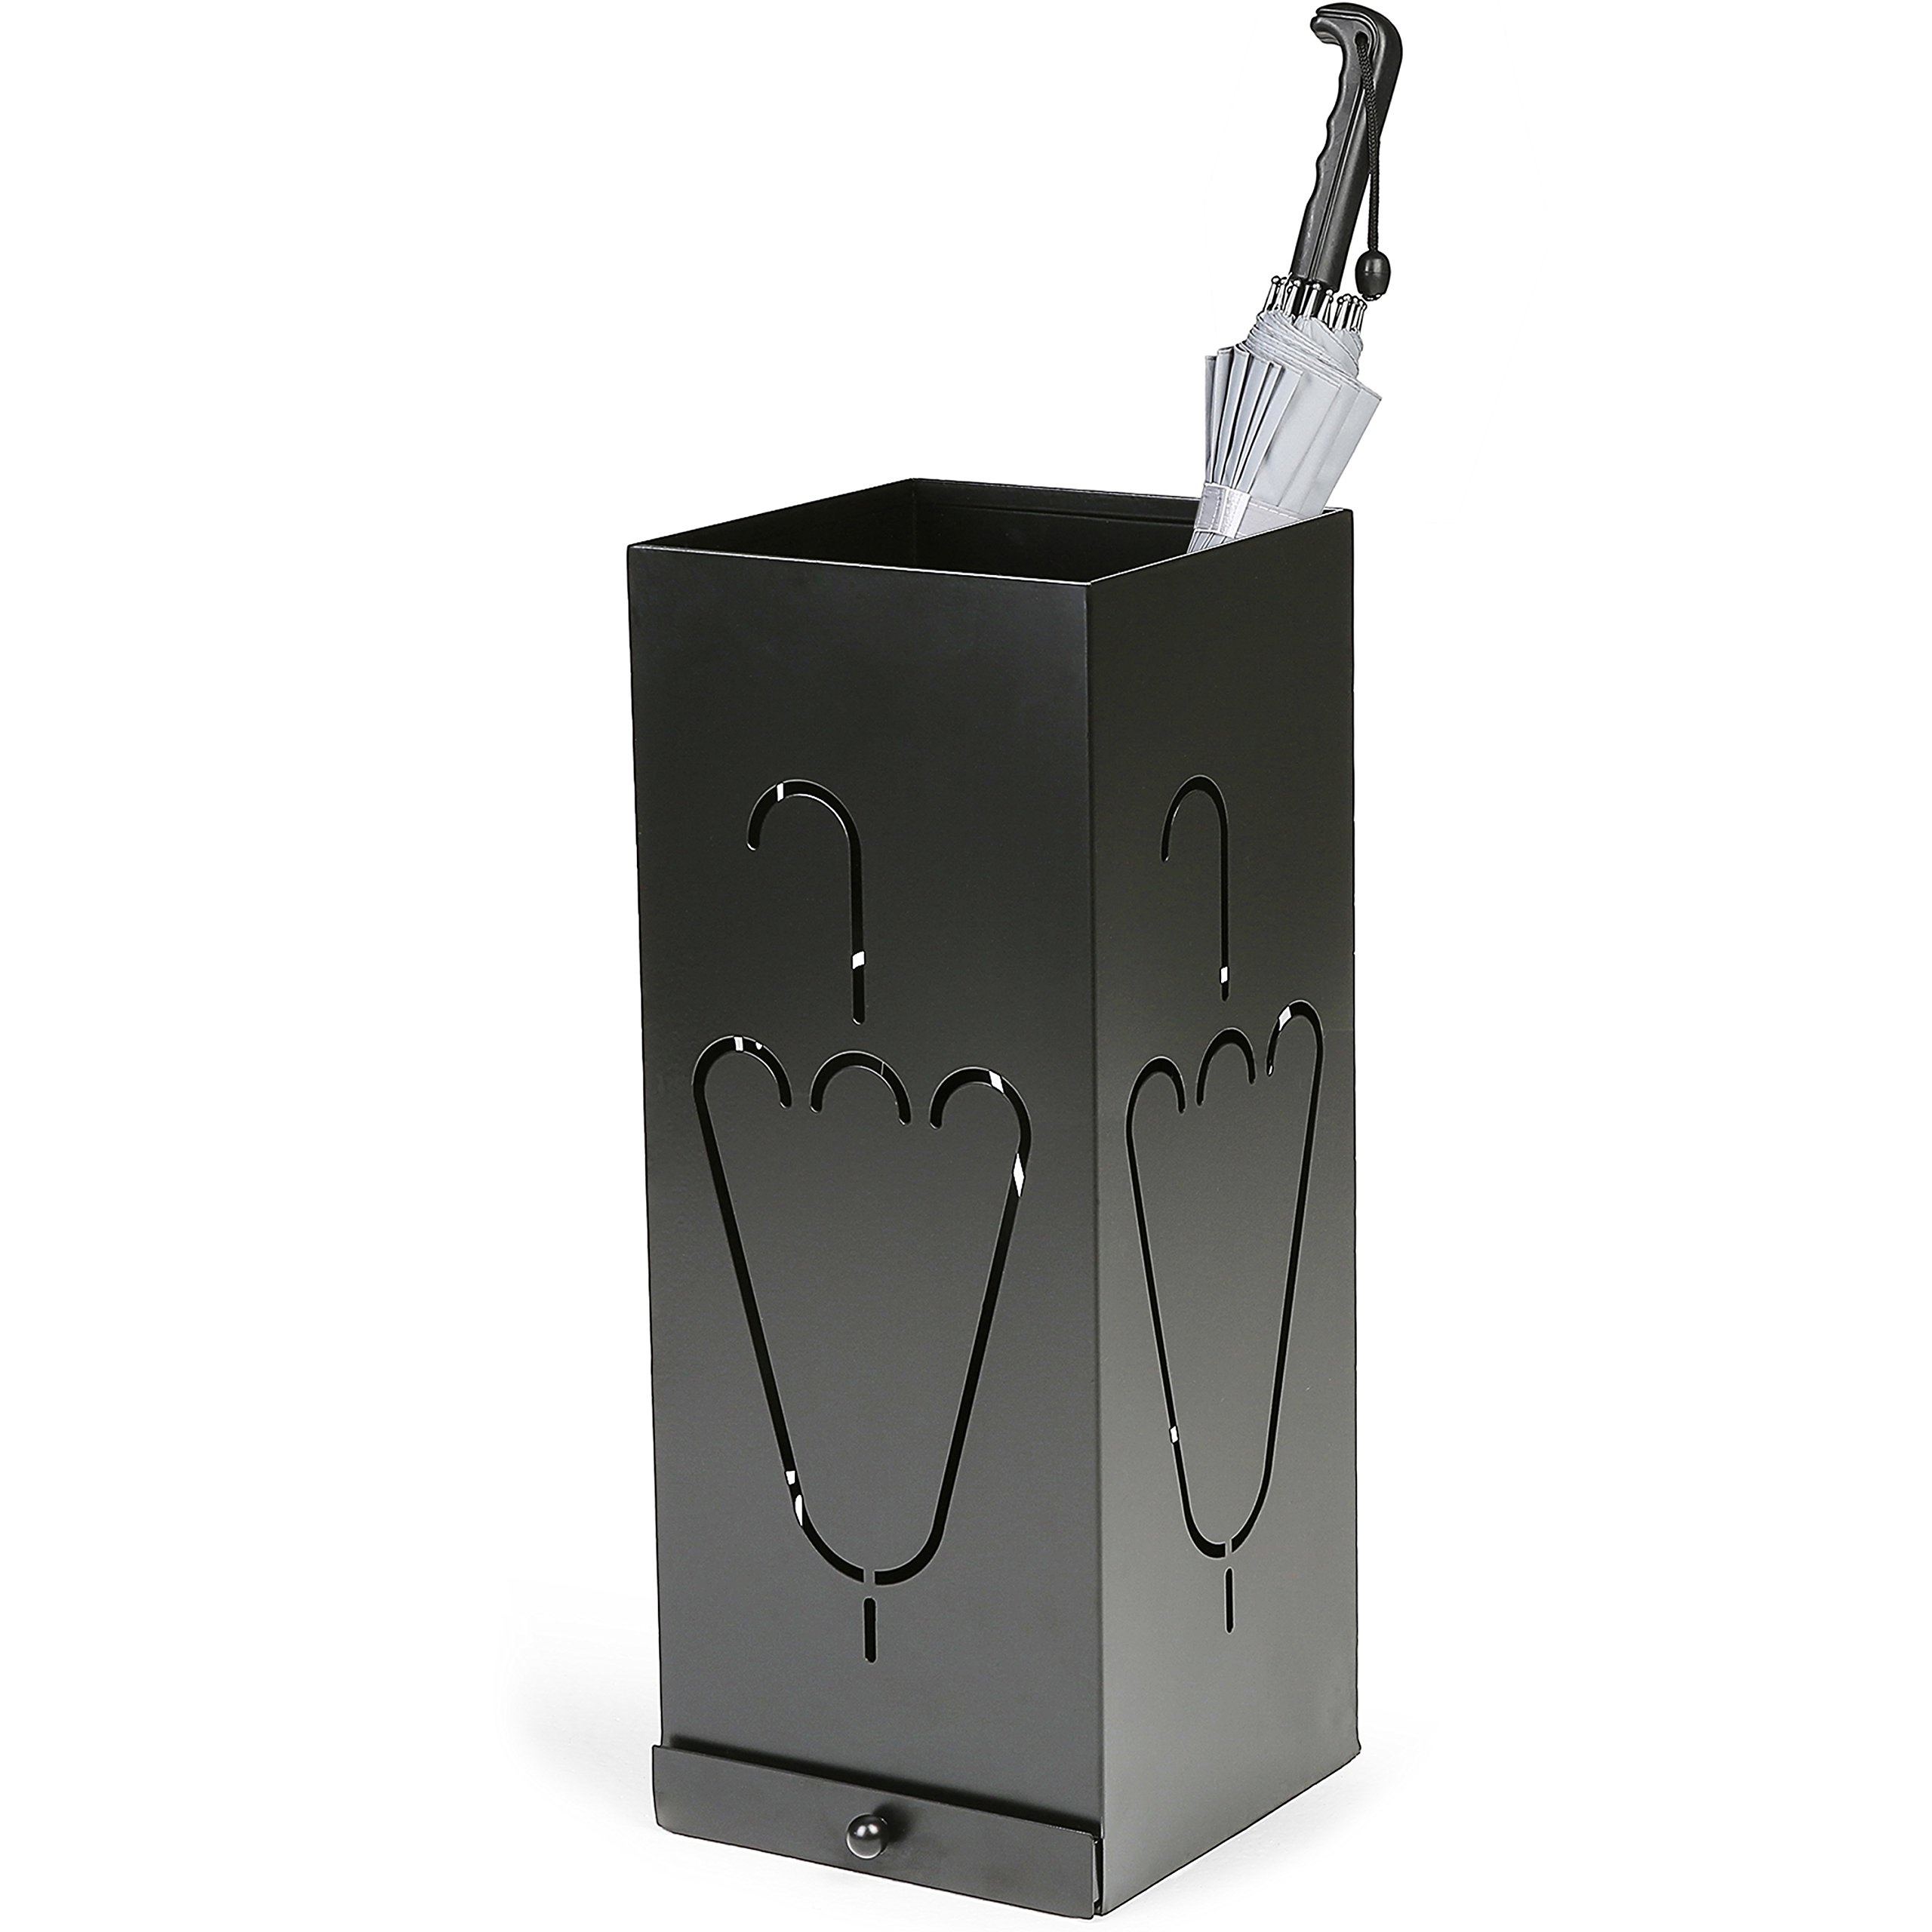 Laser Cut Design Black Metal Umbrella Stand with Removable Drip Tray